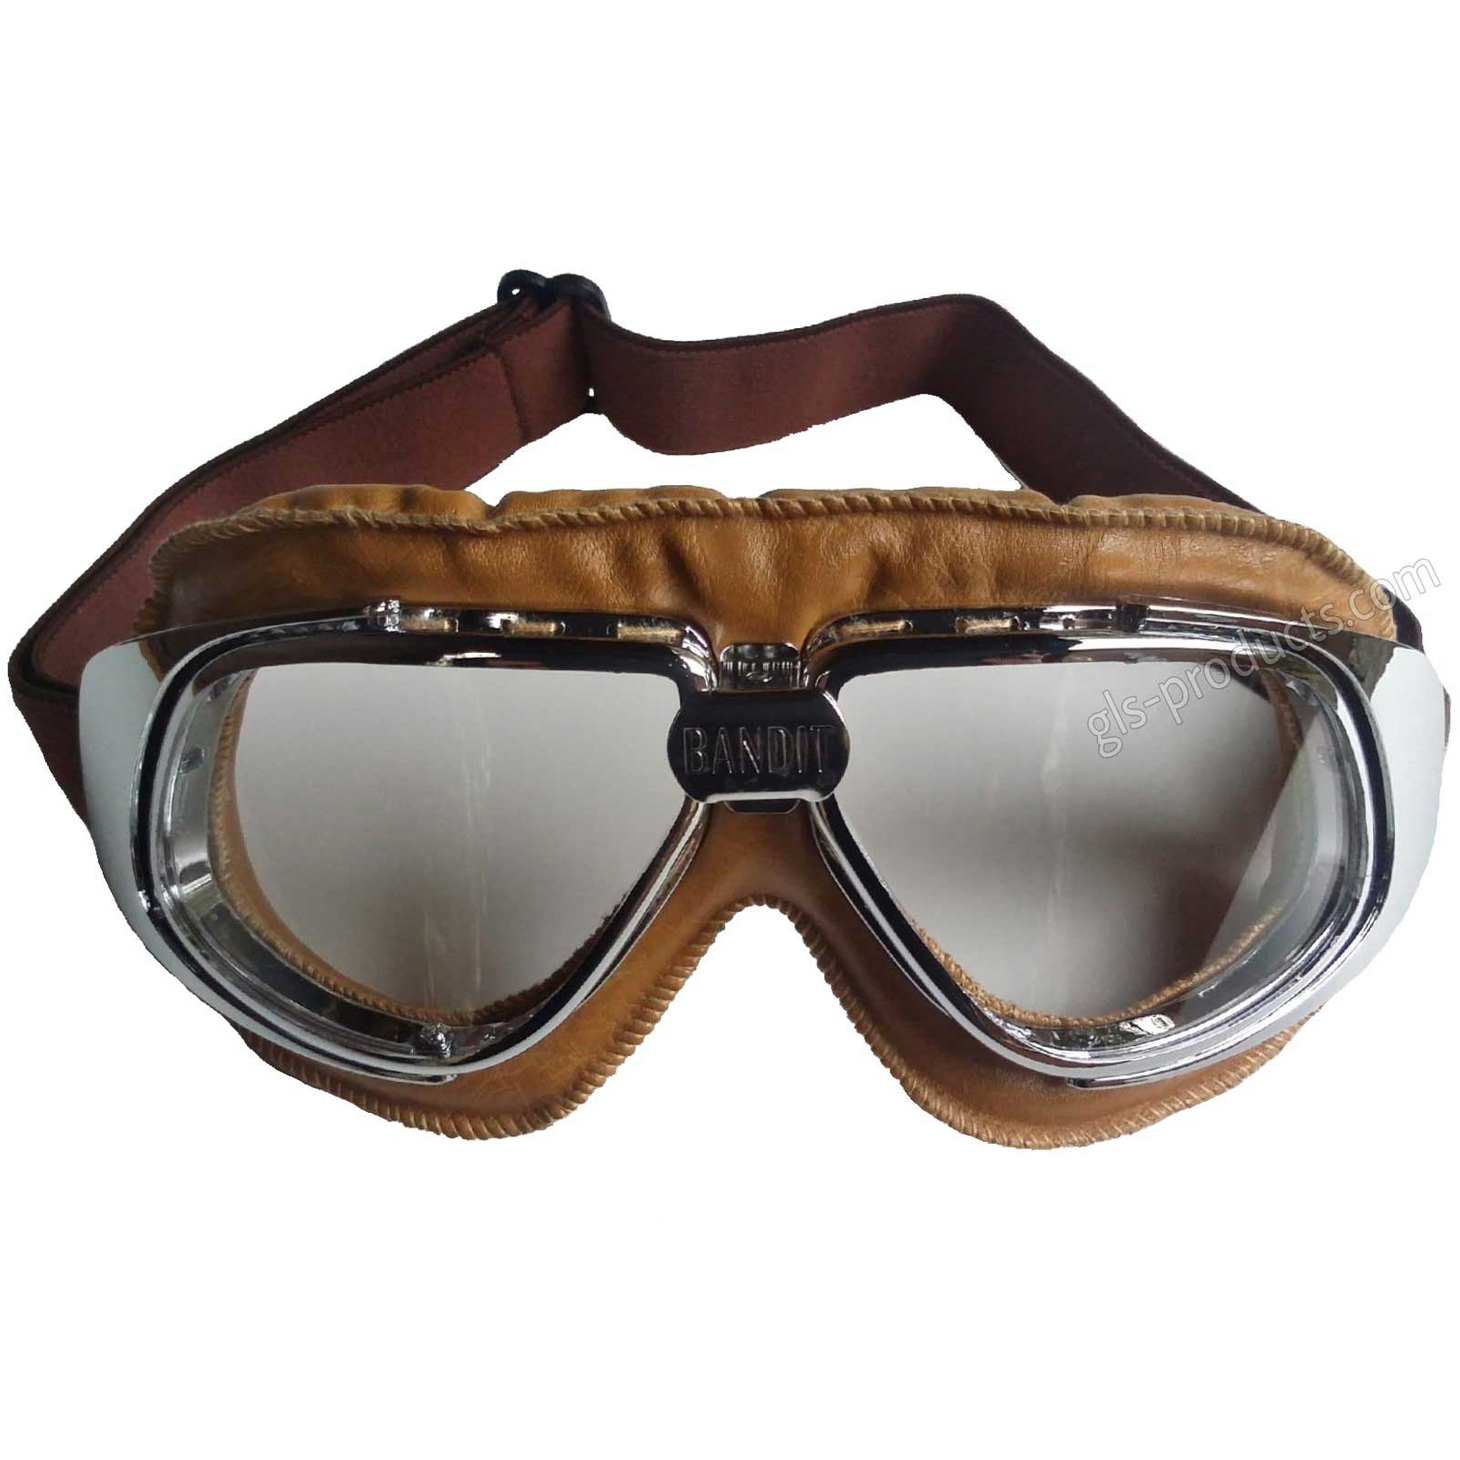 Bandit Motorcycle Glasses Goggles brown – Picture 2